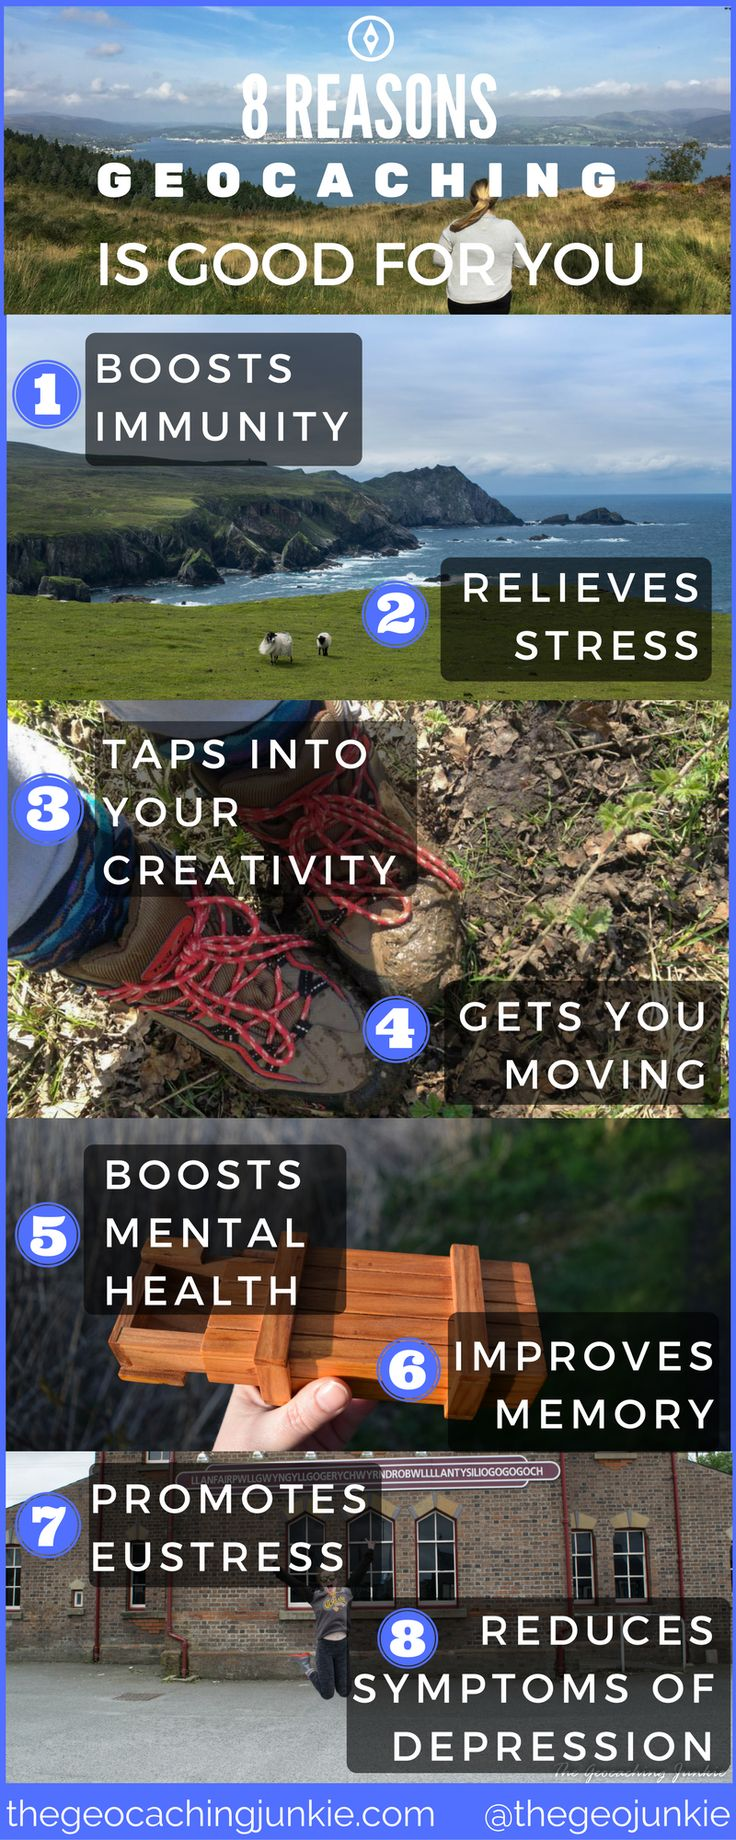 For World Mental Health Day, discover how geocaching is good for mind and body at my blog!